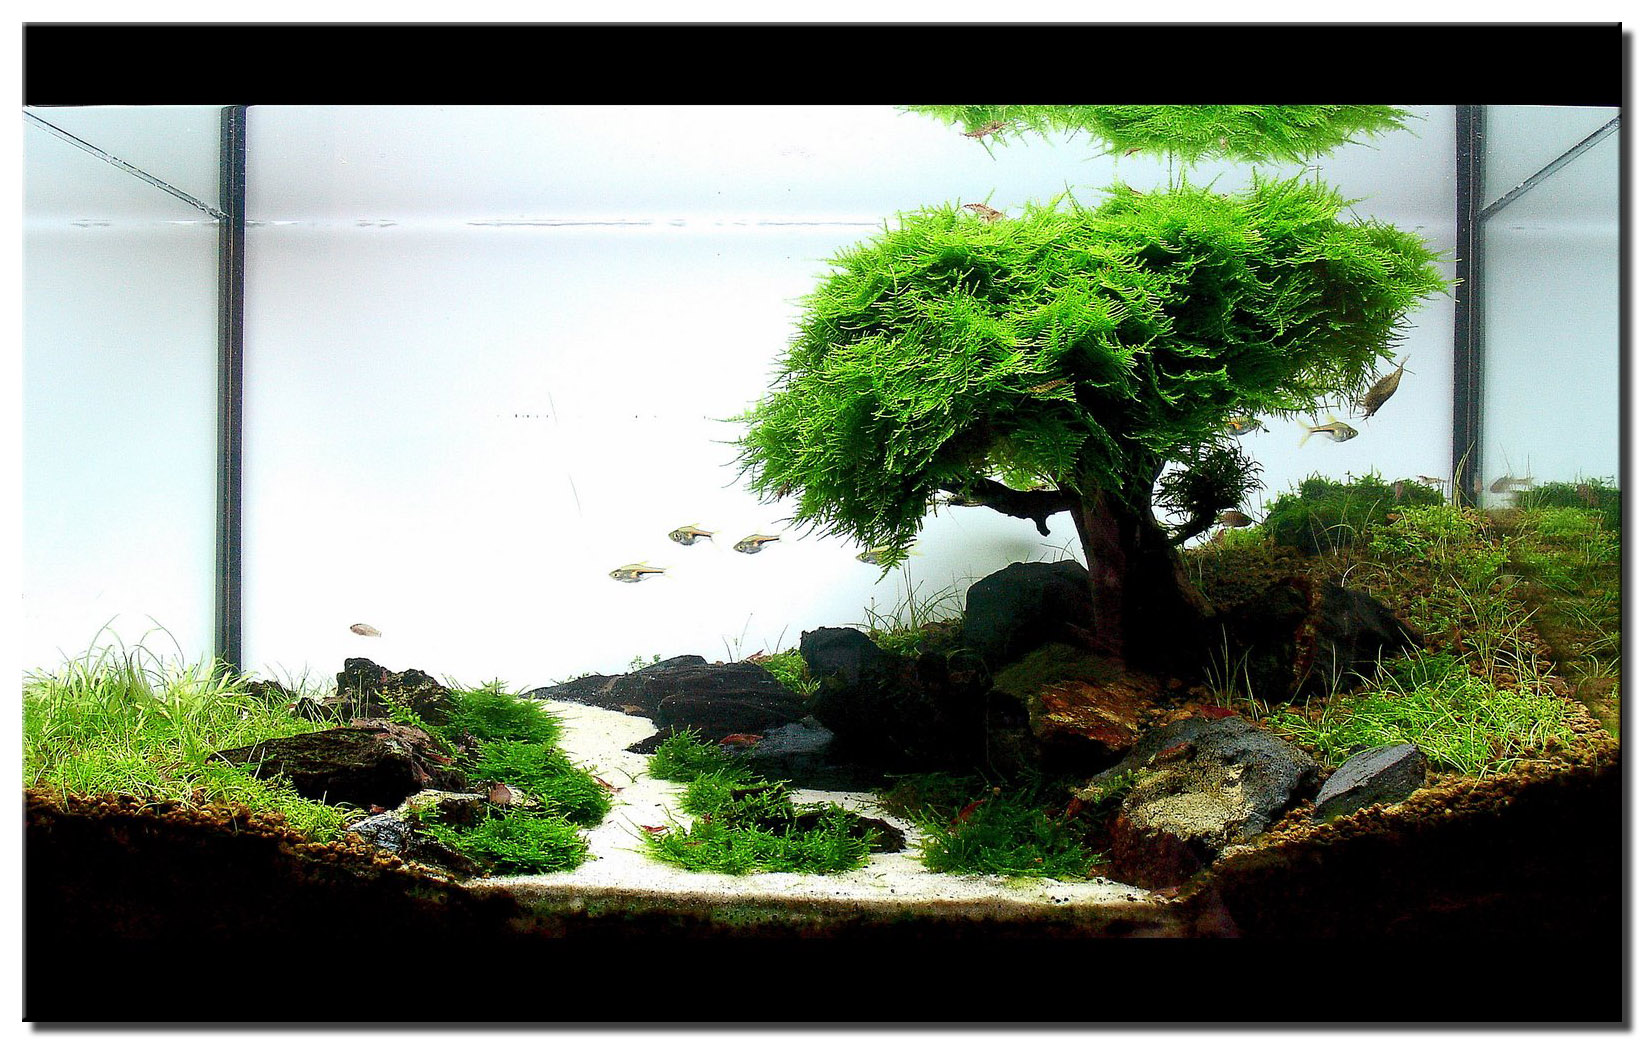 Aquascape on Pinterest | Aquascaping, Aquarium and Underwater